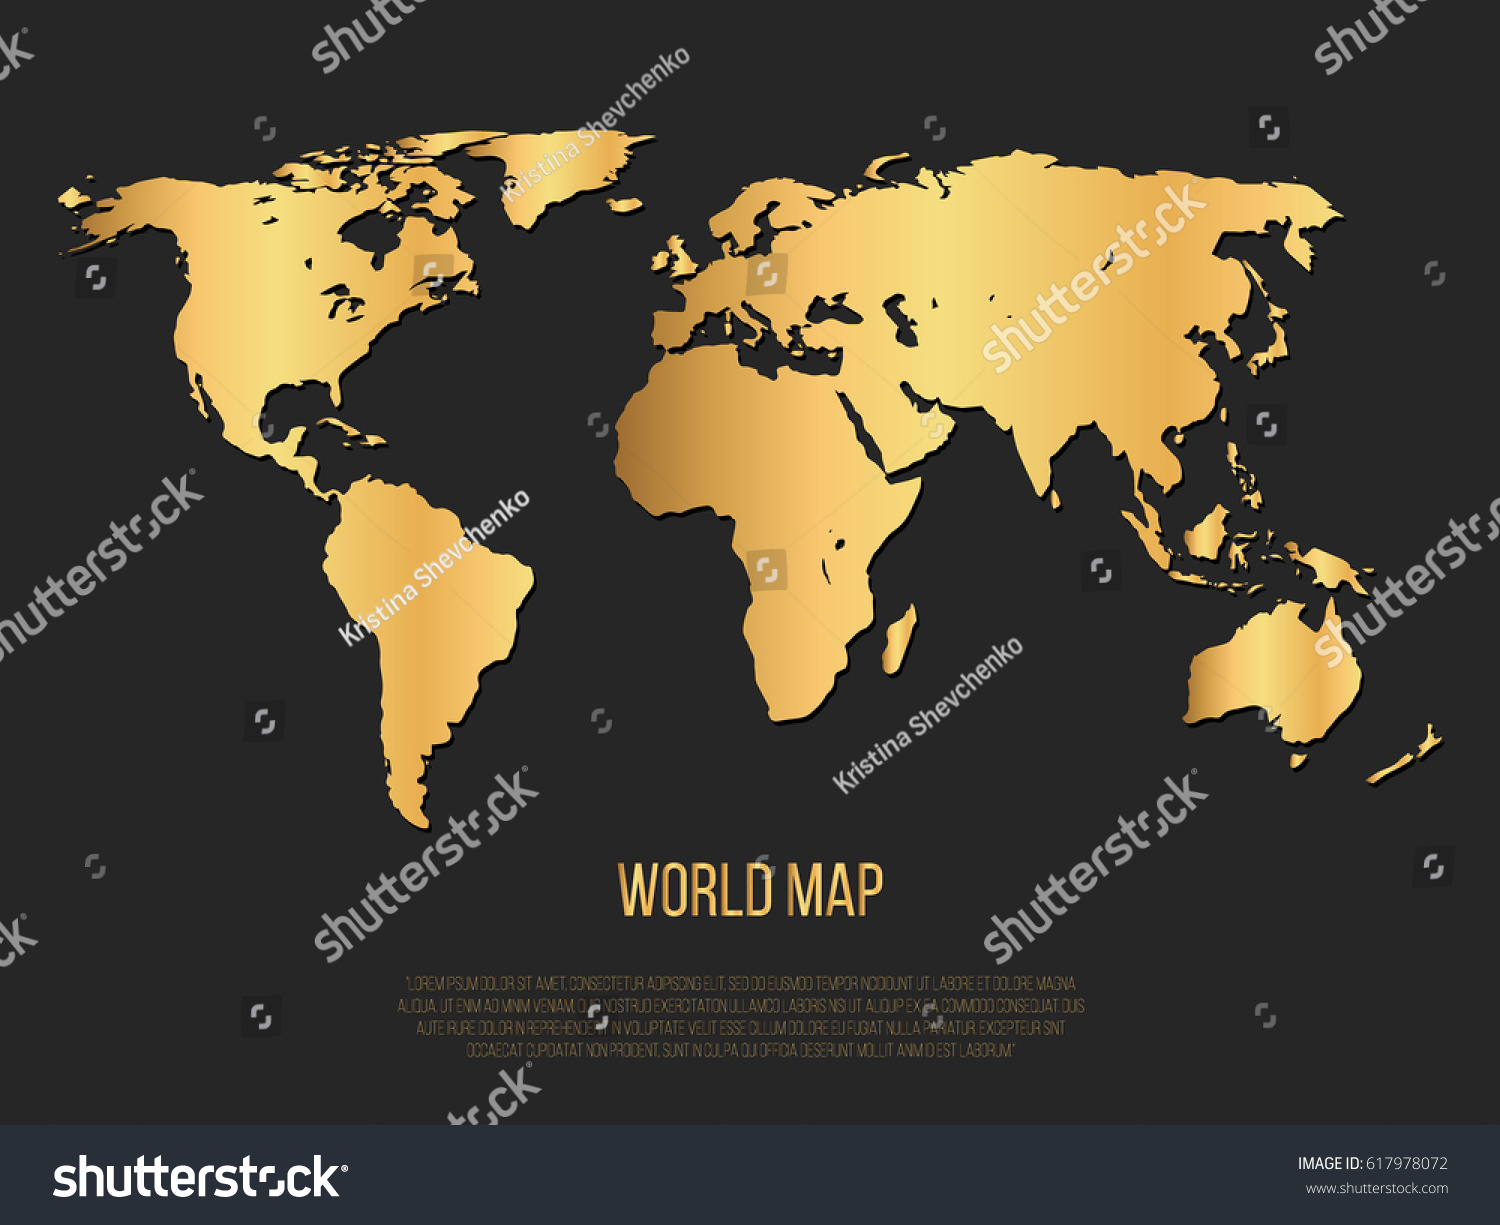 Gold world map on black background stock vector 617978072 shutterstock gold world map on black background vector gumiabroncs Images